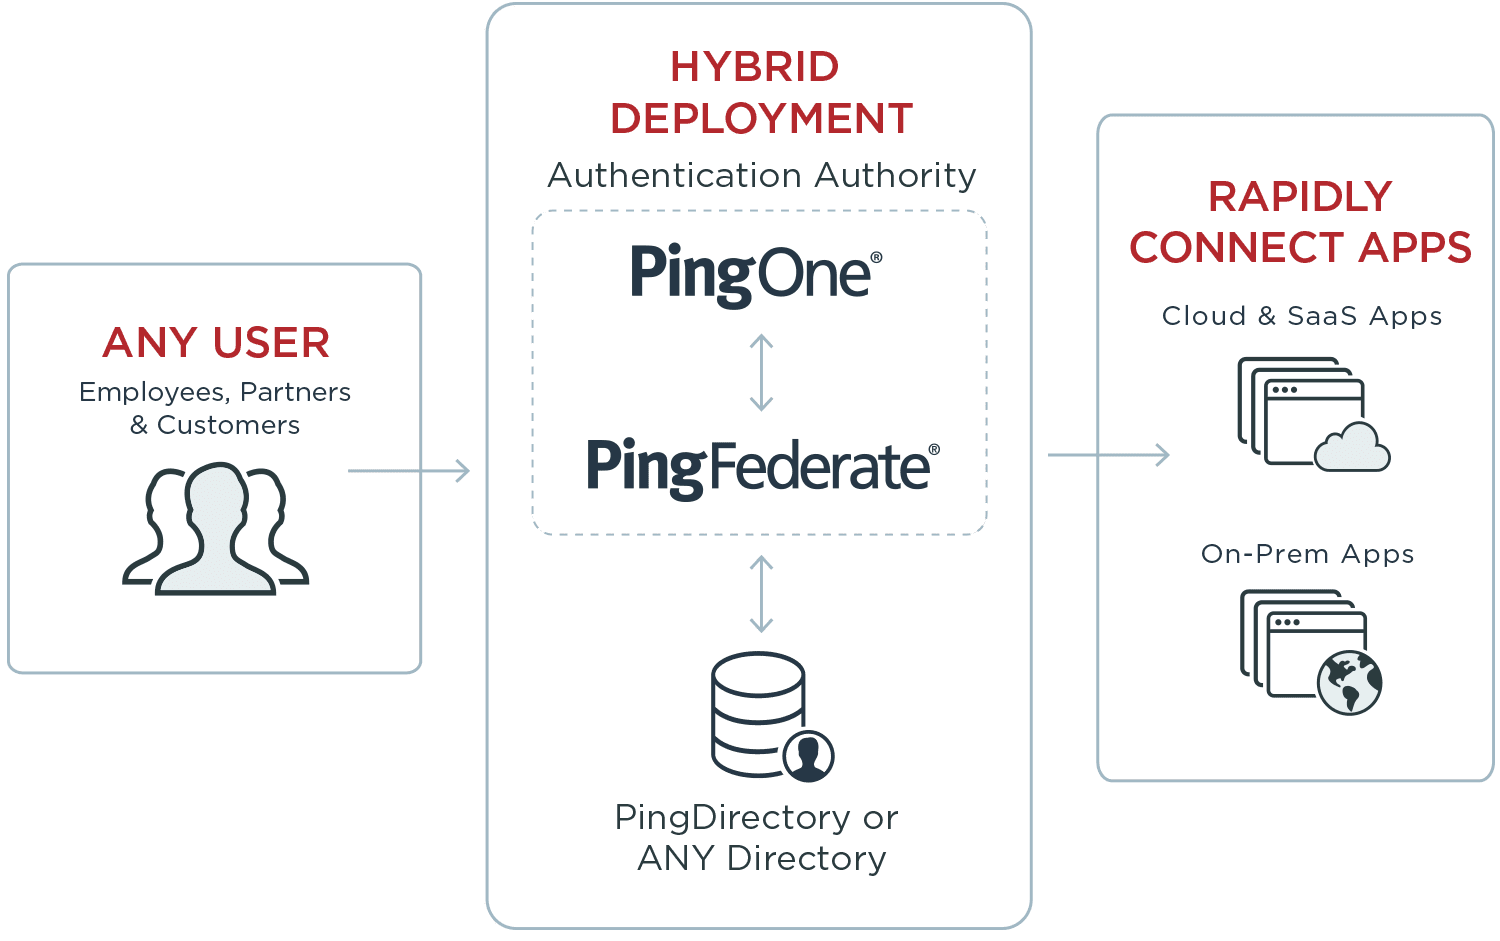 Any user can safely and rapidly connect to apps via hybrid development